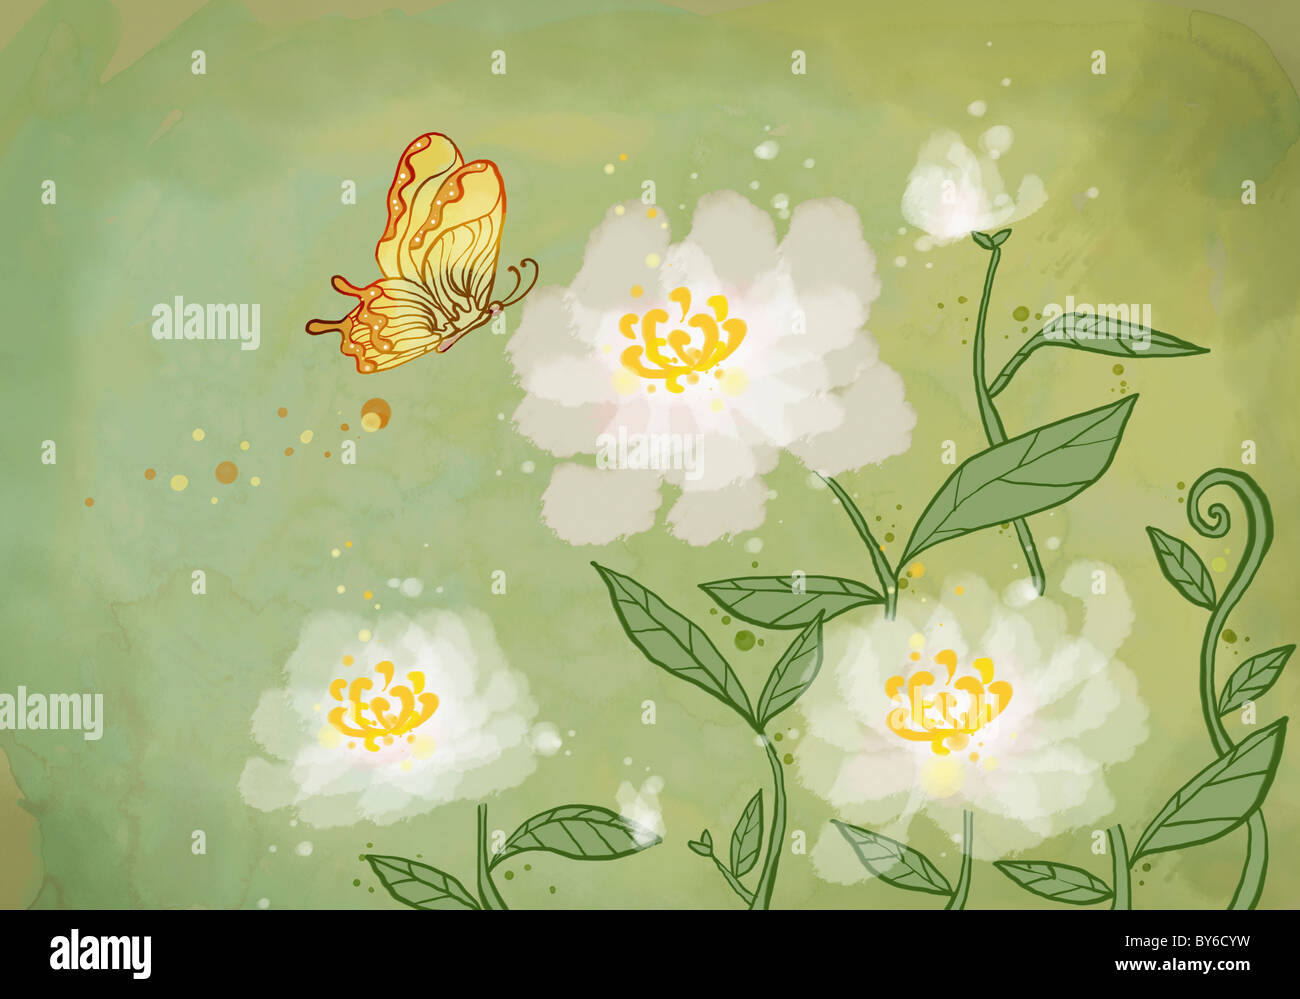 new year's greeting illustration in oriental mood Stock Photo